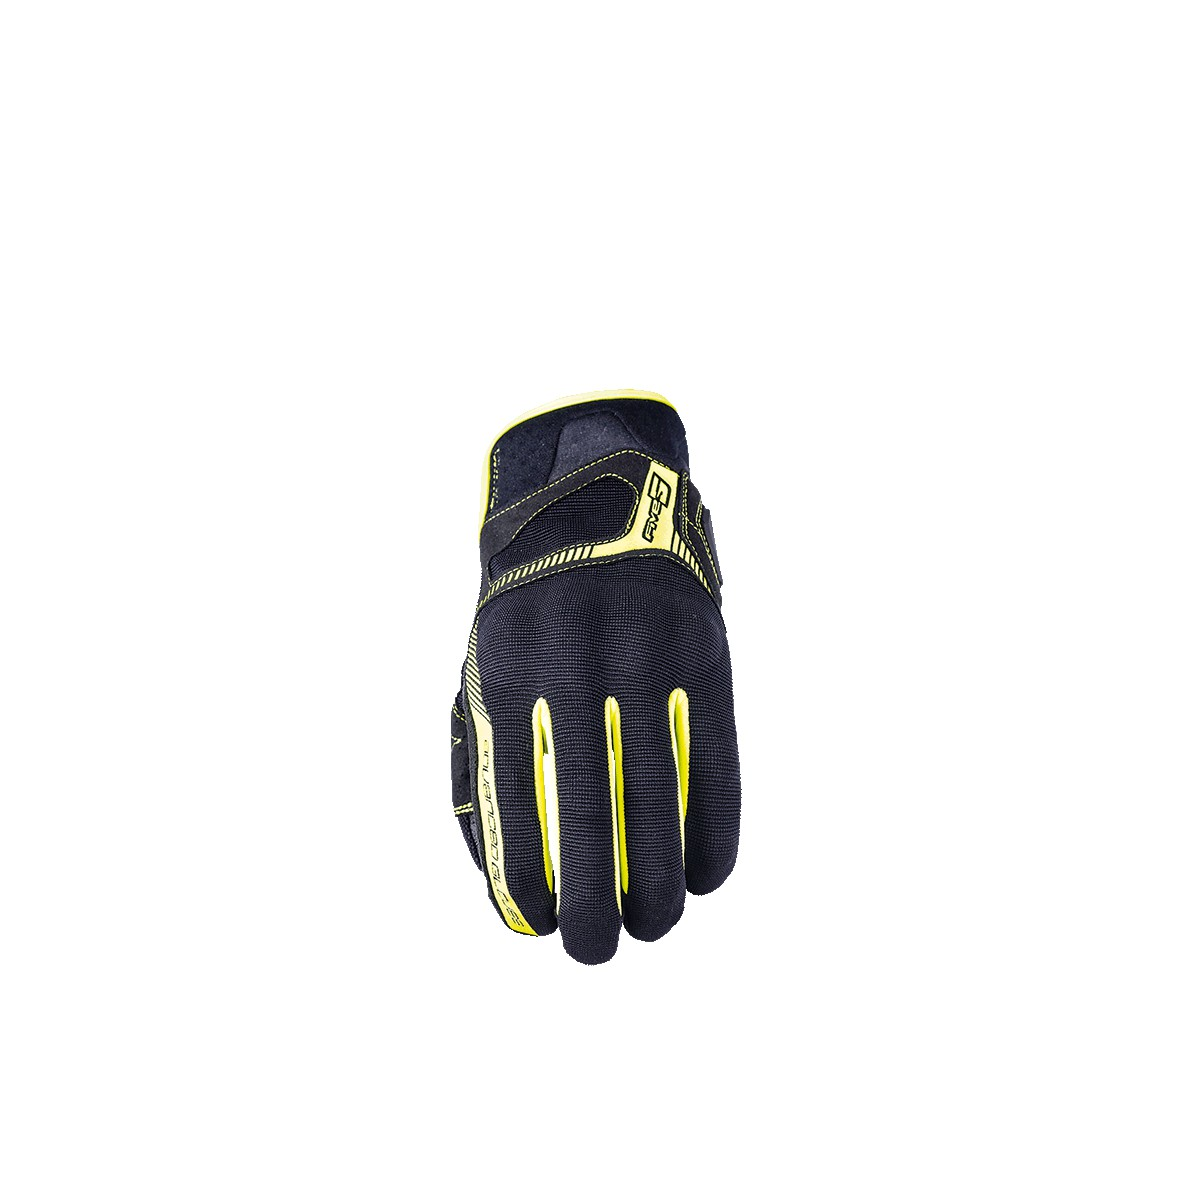 Guantes Five RS3 negro amarillo fluor. Loading zoom 185b6390779